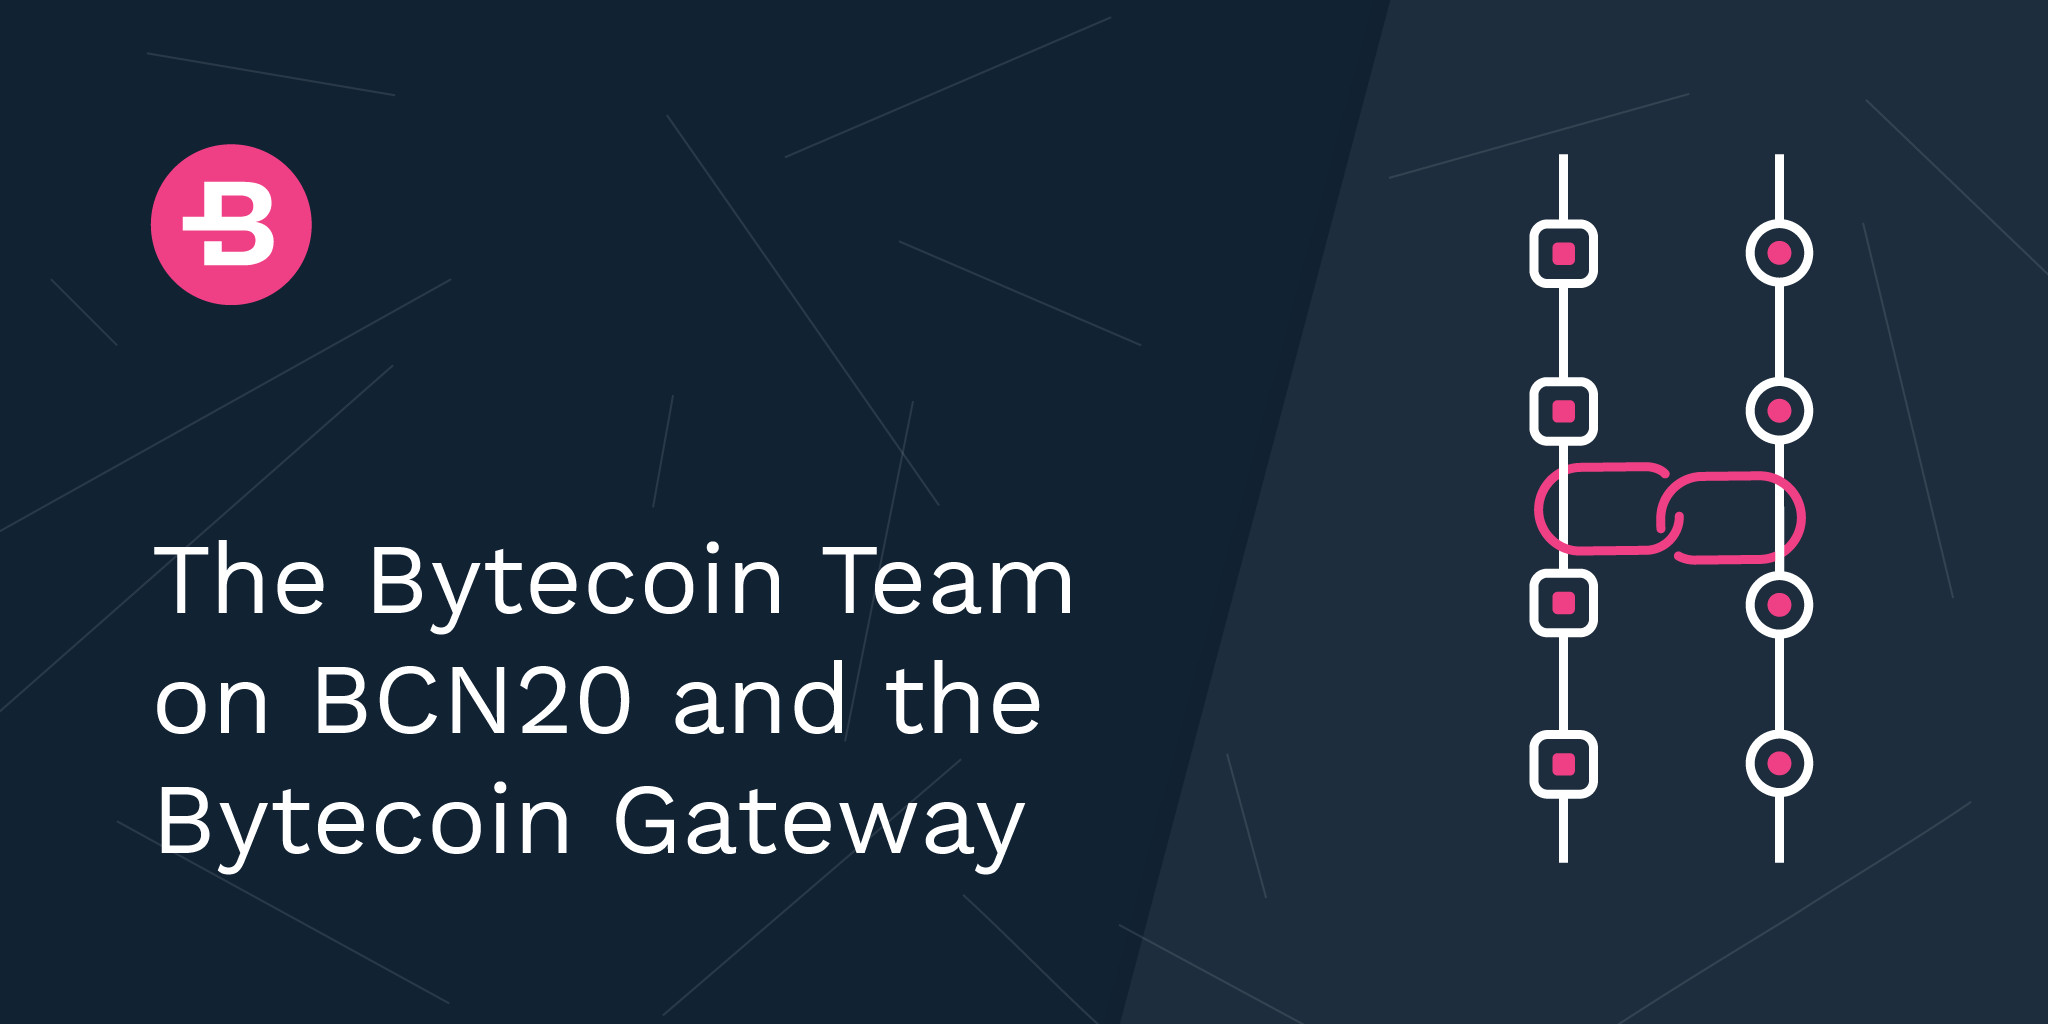 The Bytecoin Team on BCN20 and the Bytecoin Gateway